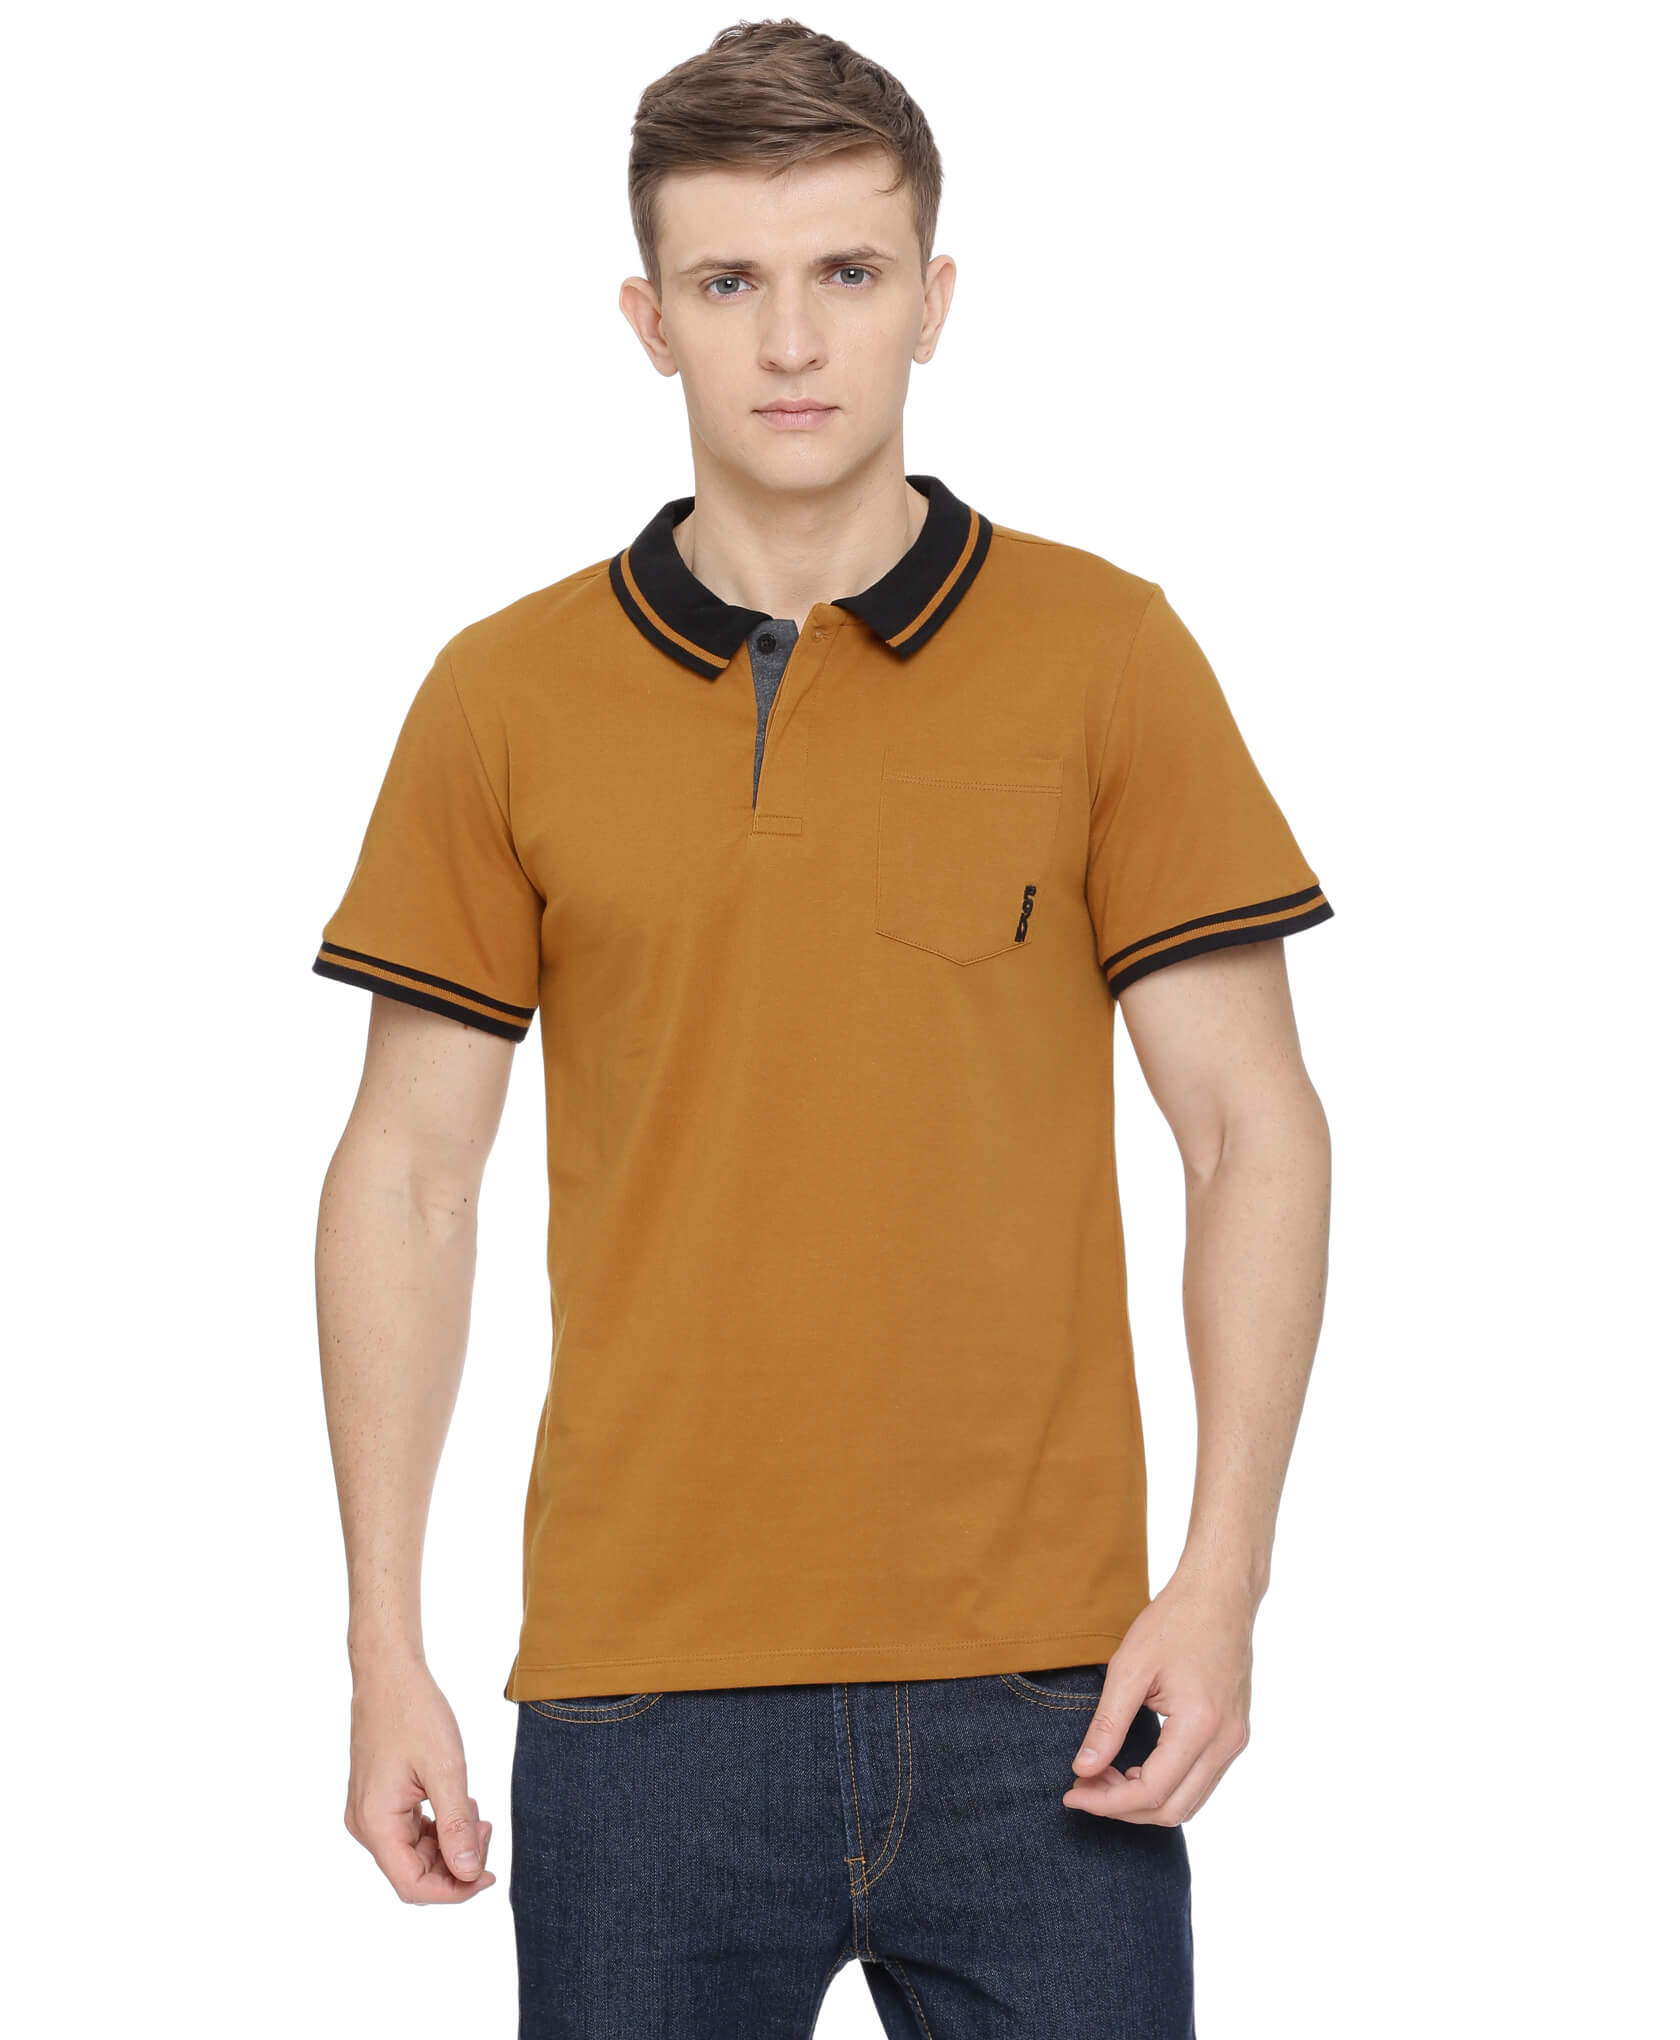 ATIVO PCKM Polo Jersey with Embellishment